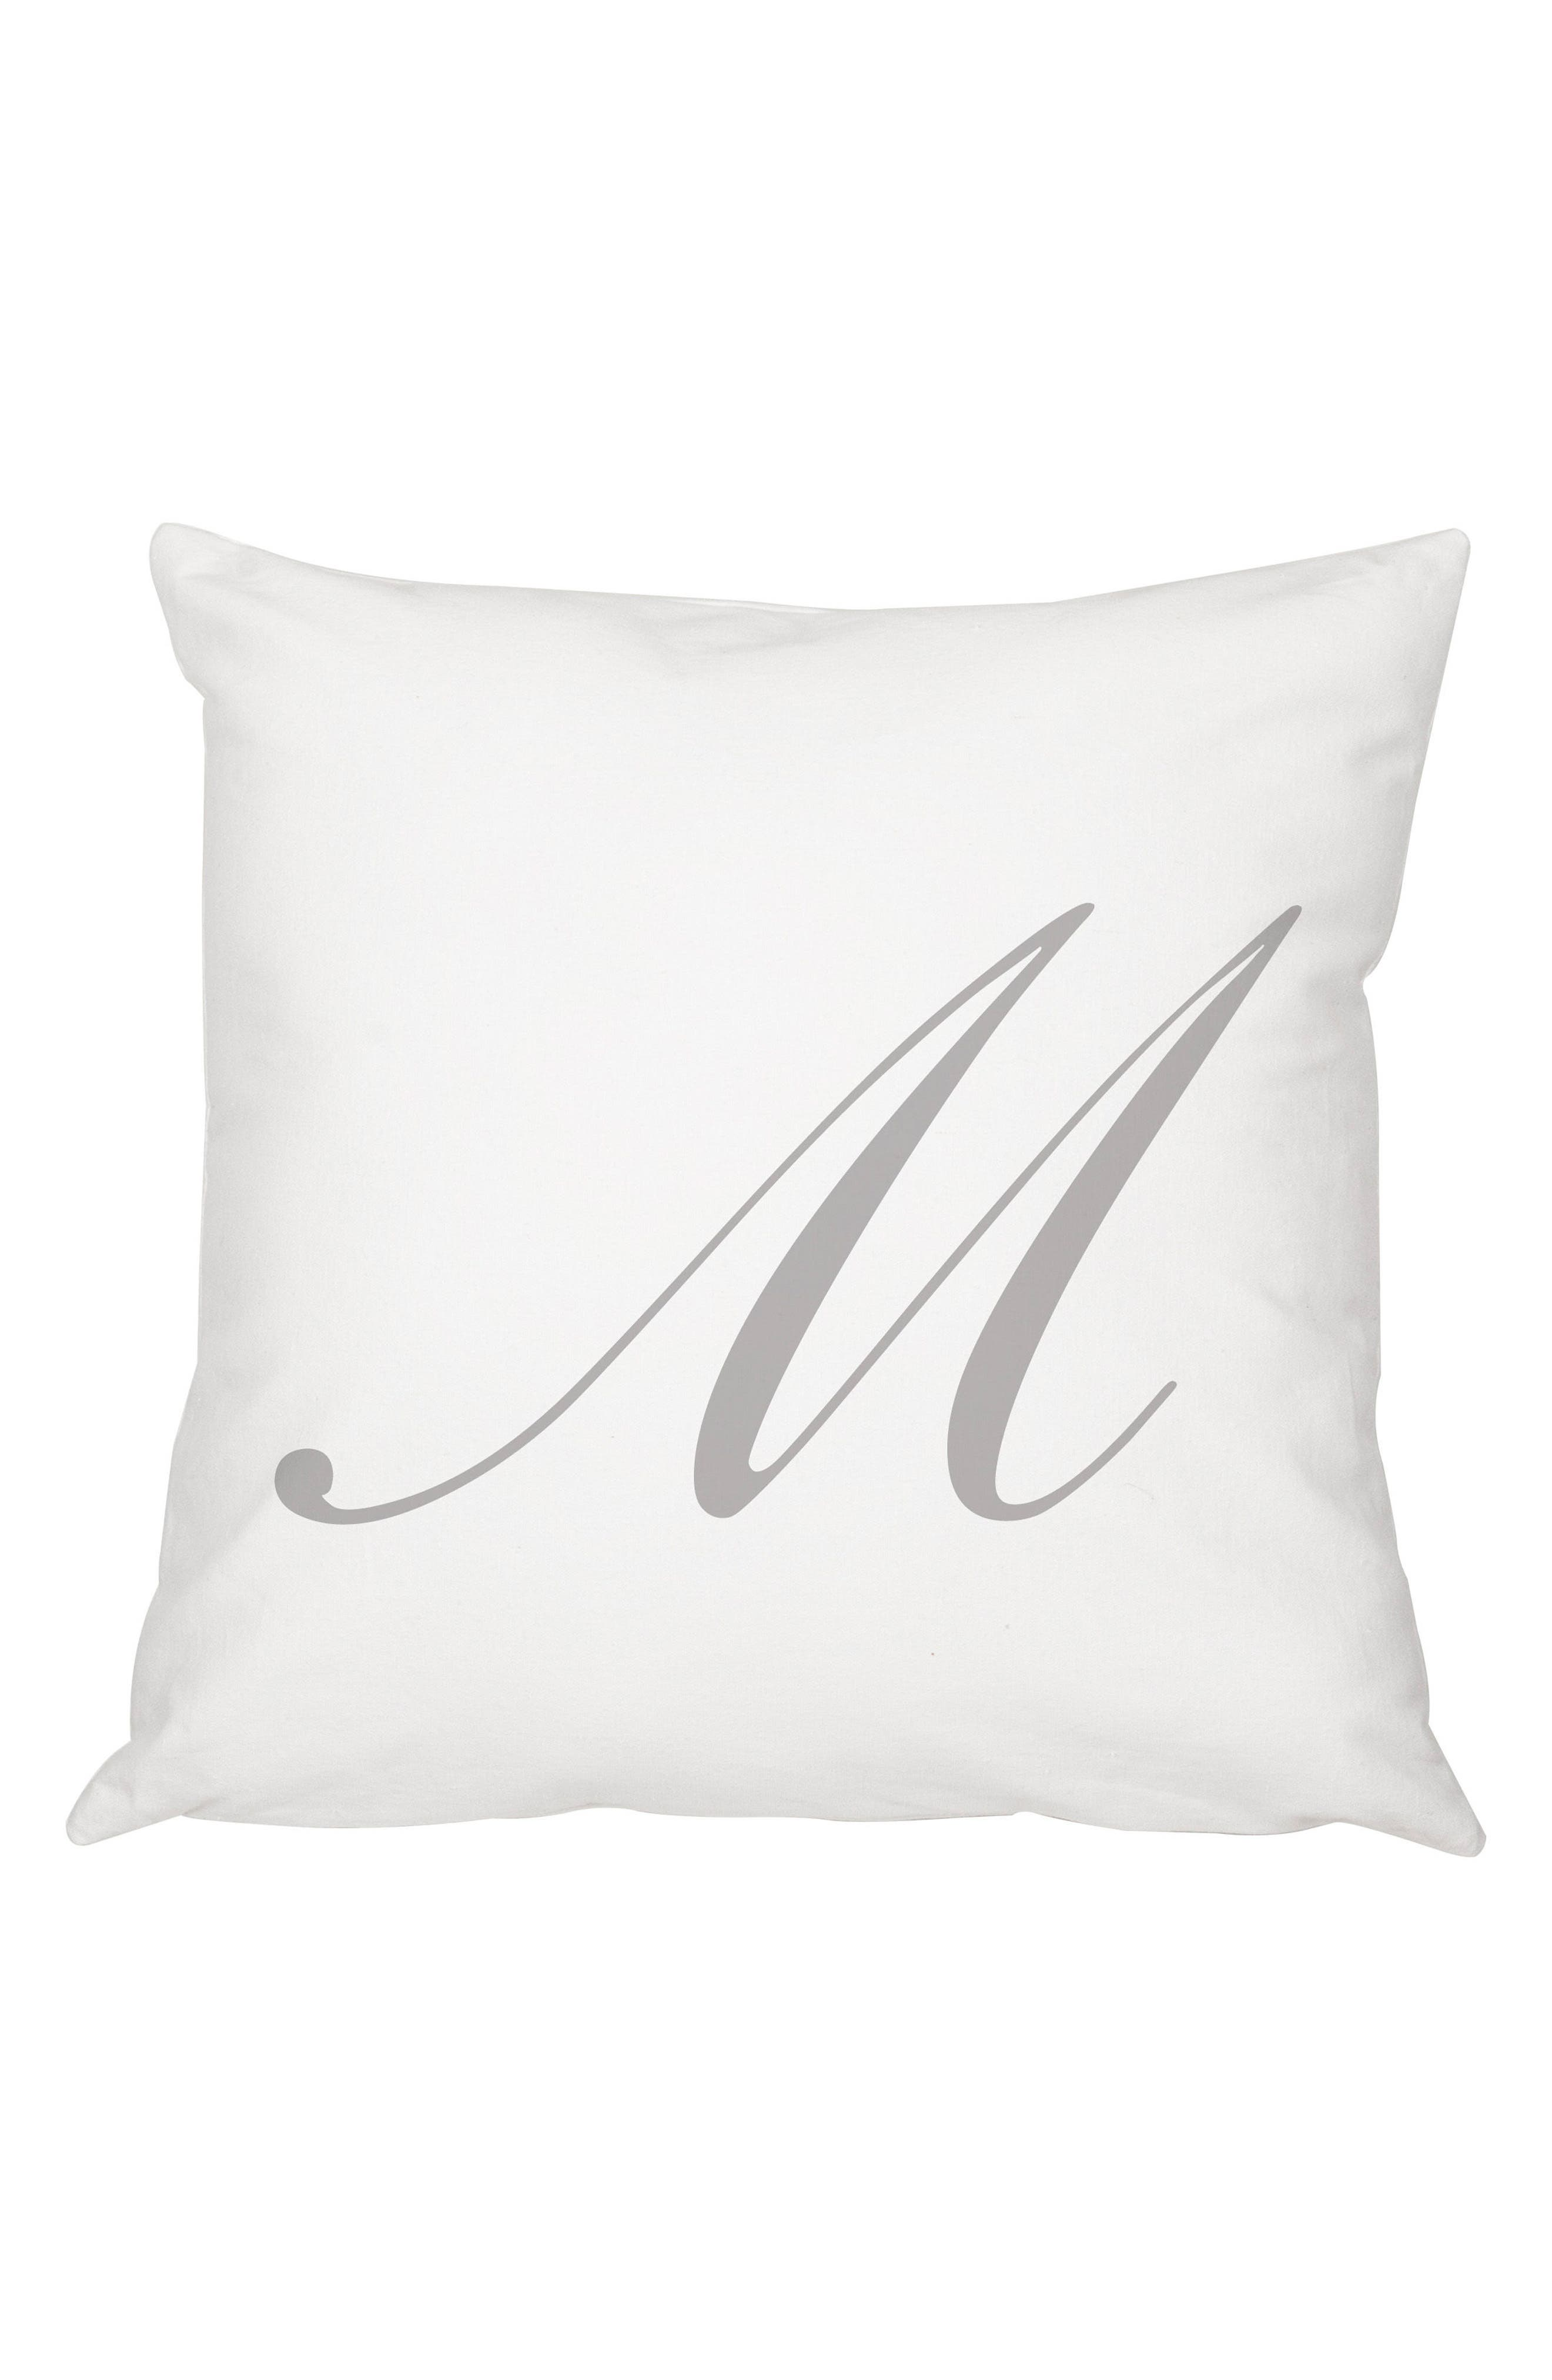 Alternate Image 1 Selected - Cathy's Concepts Script Monogram Accent Pillow